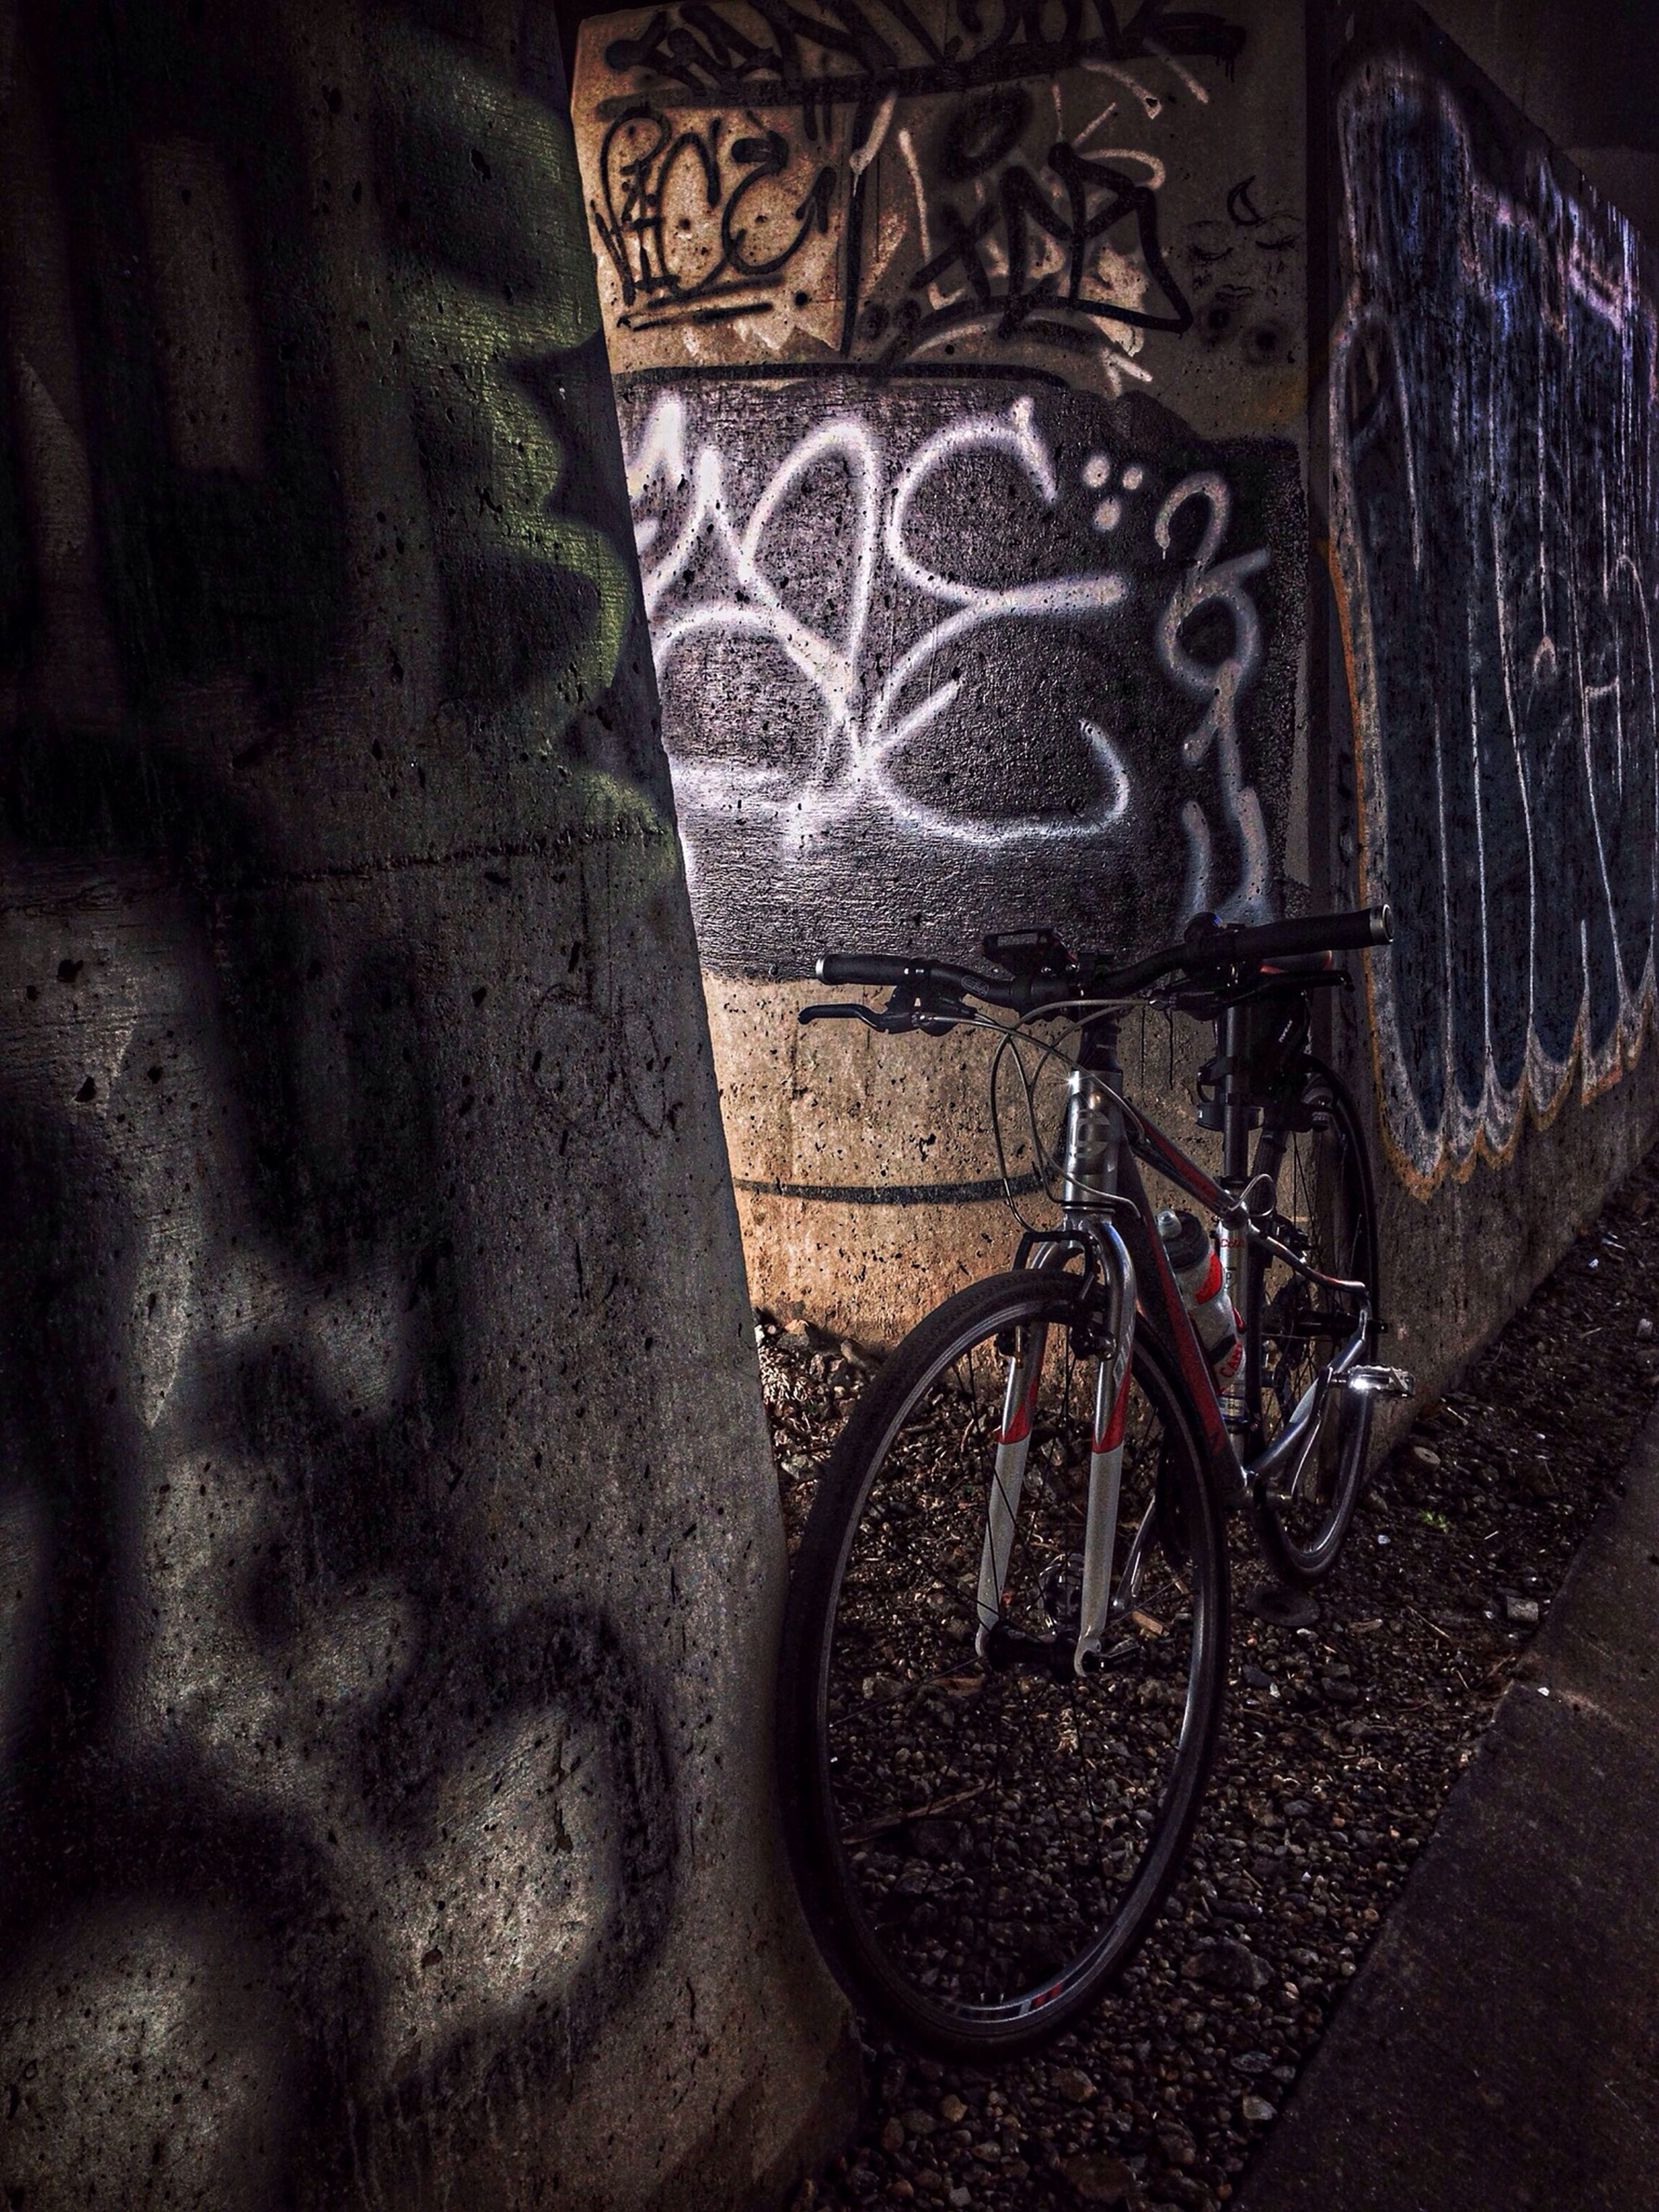 wall - building feature, bicycle, indoors, wall, graffiti, shadow, no people, built structure, sunlight, old, architecture, art, absence, high angle view, day, art and craft, close-up, sidewalk, stationary, parking